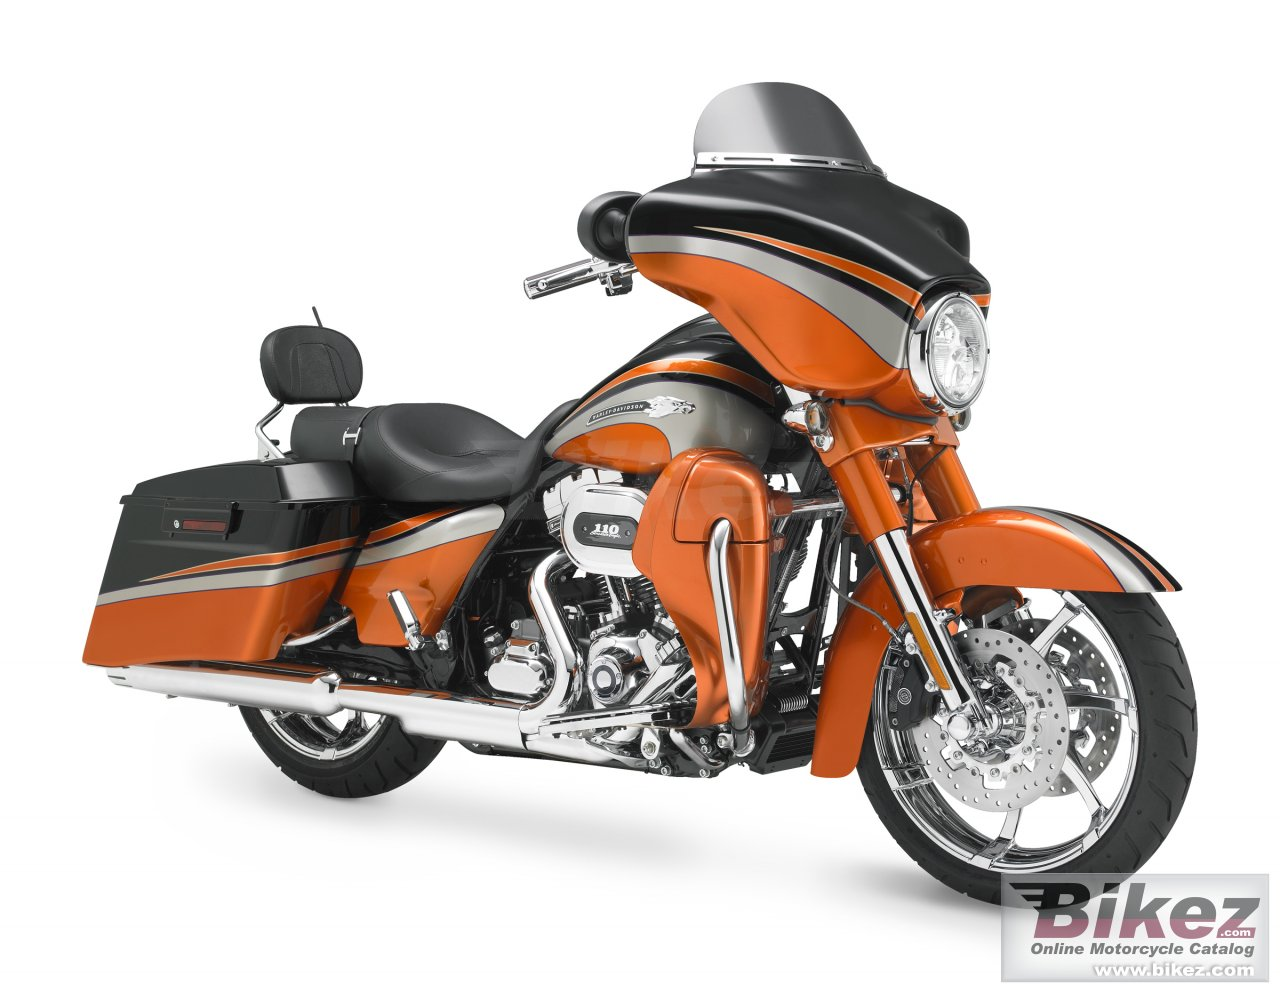 Big Harley-Davidson flhxse2 cvo street glide picture and wallpaper from Bikez.com